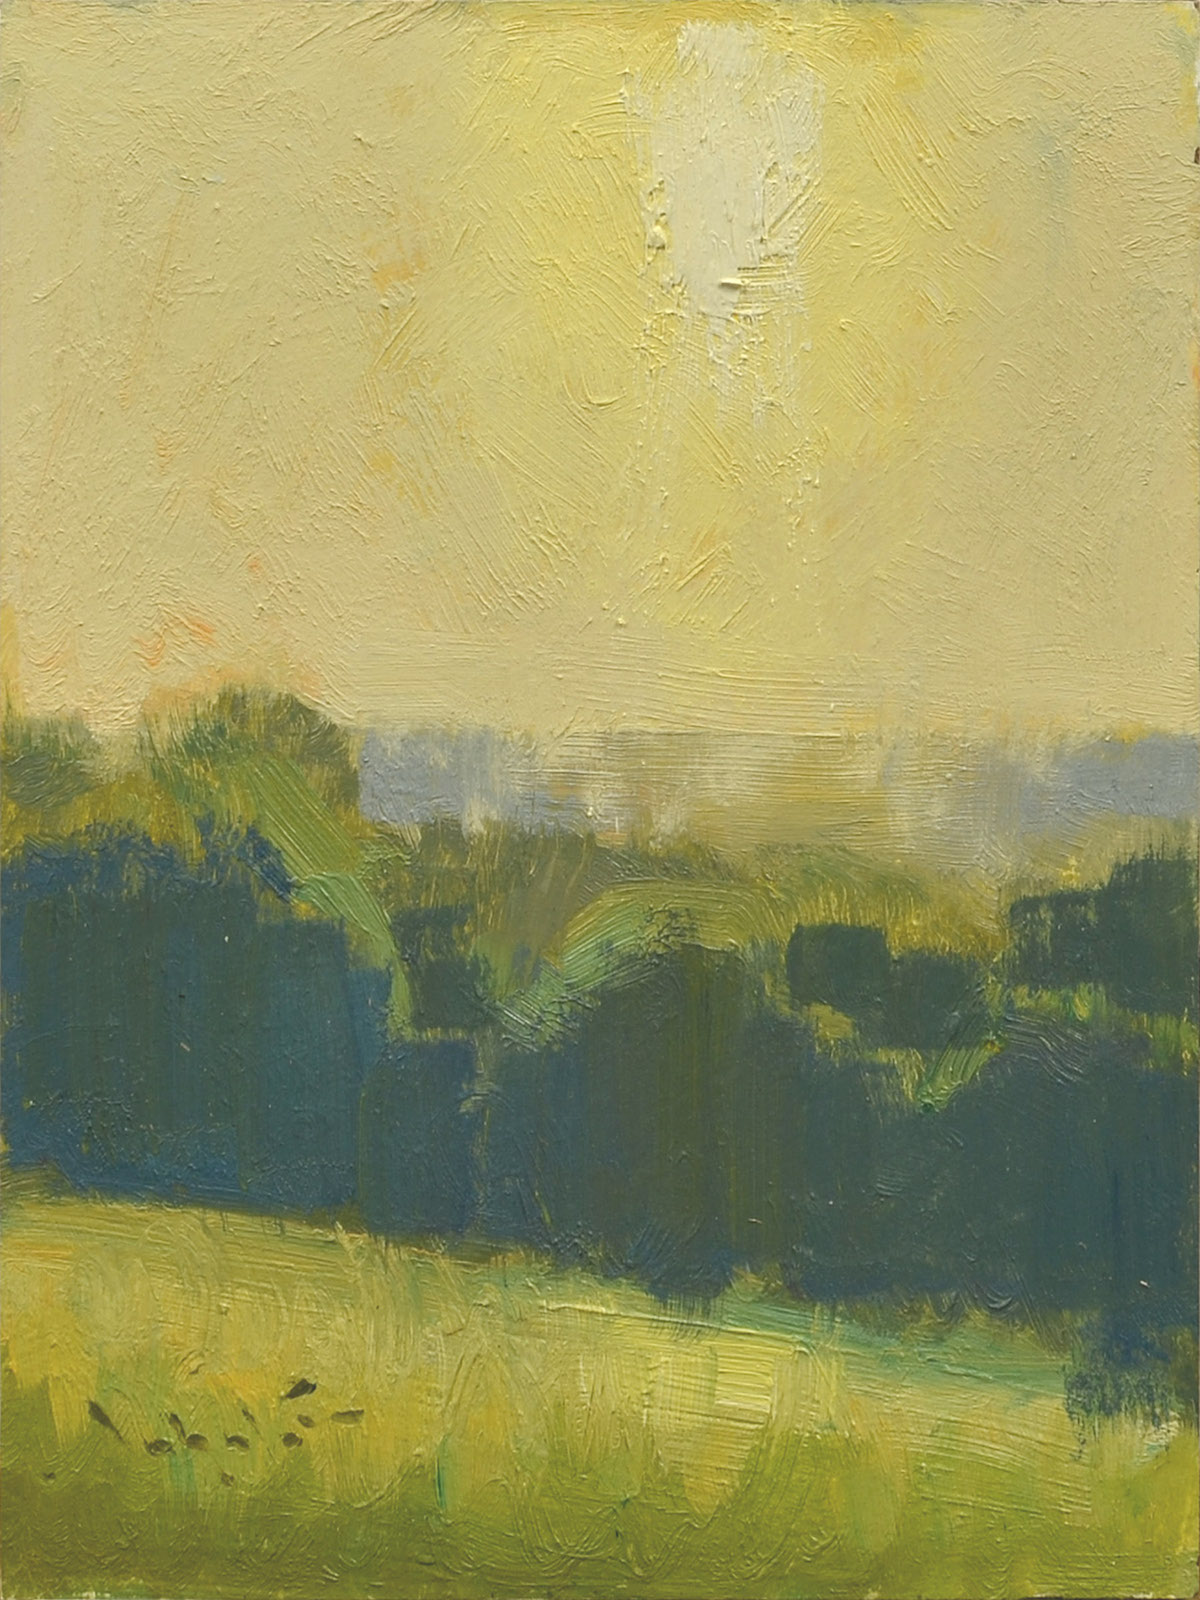 abstract landscape in yellow